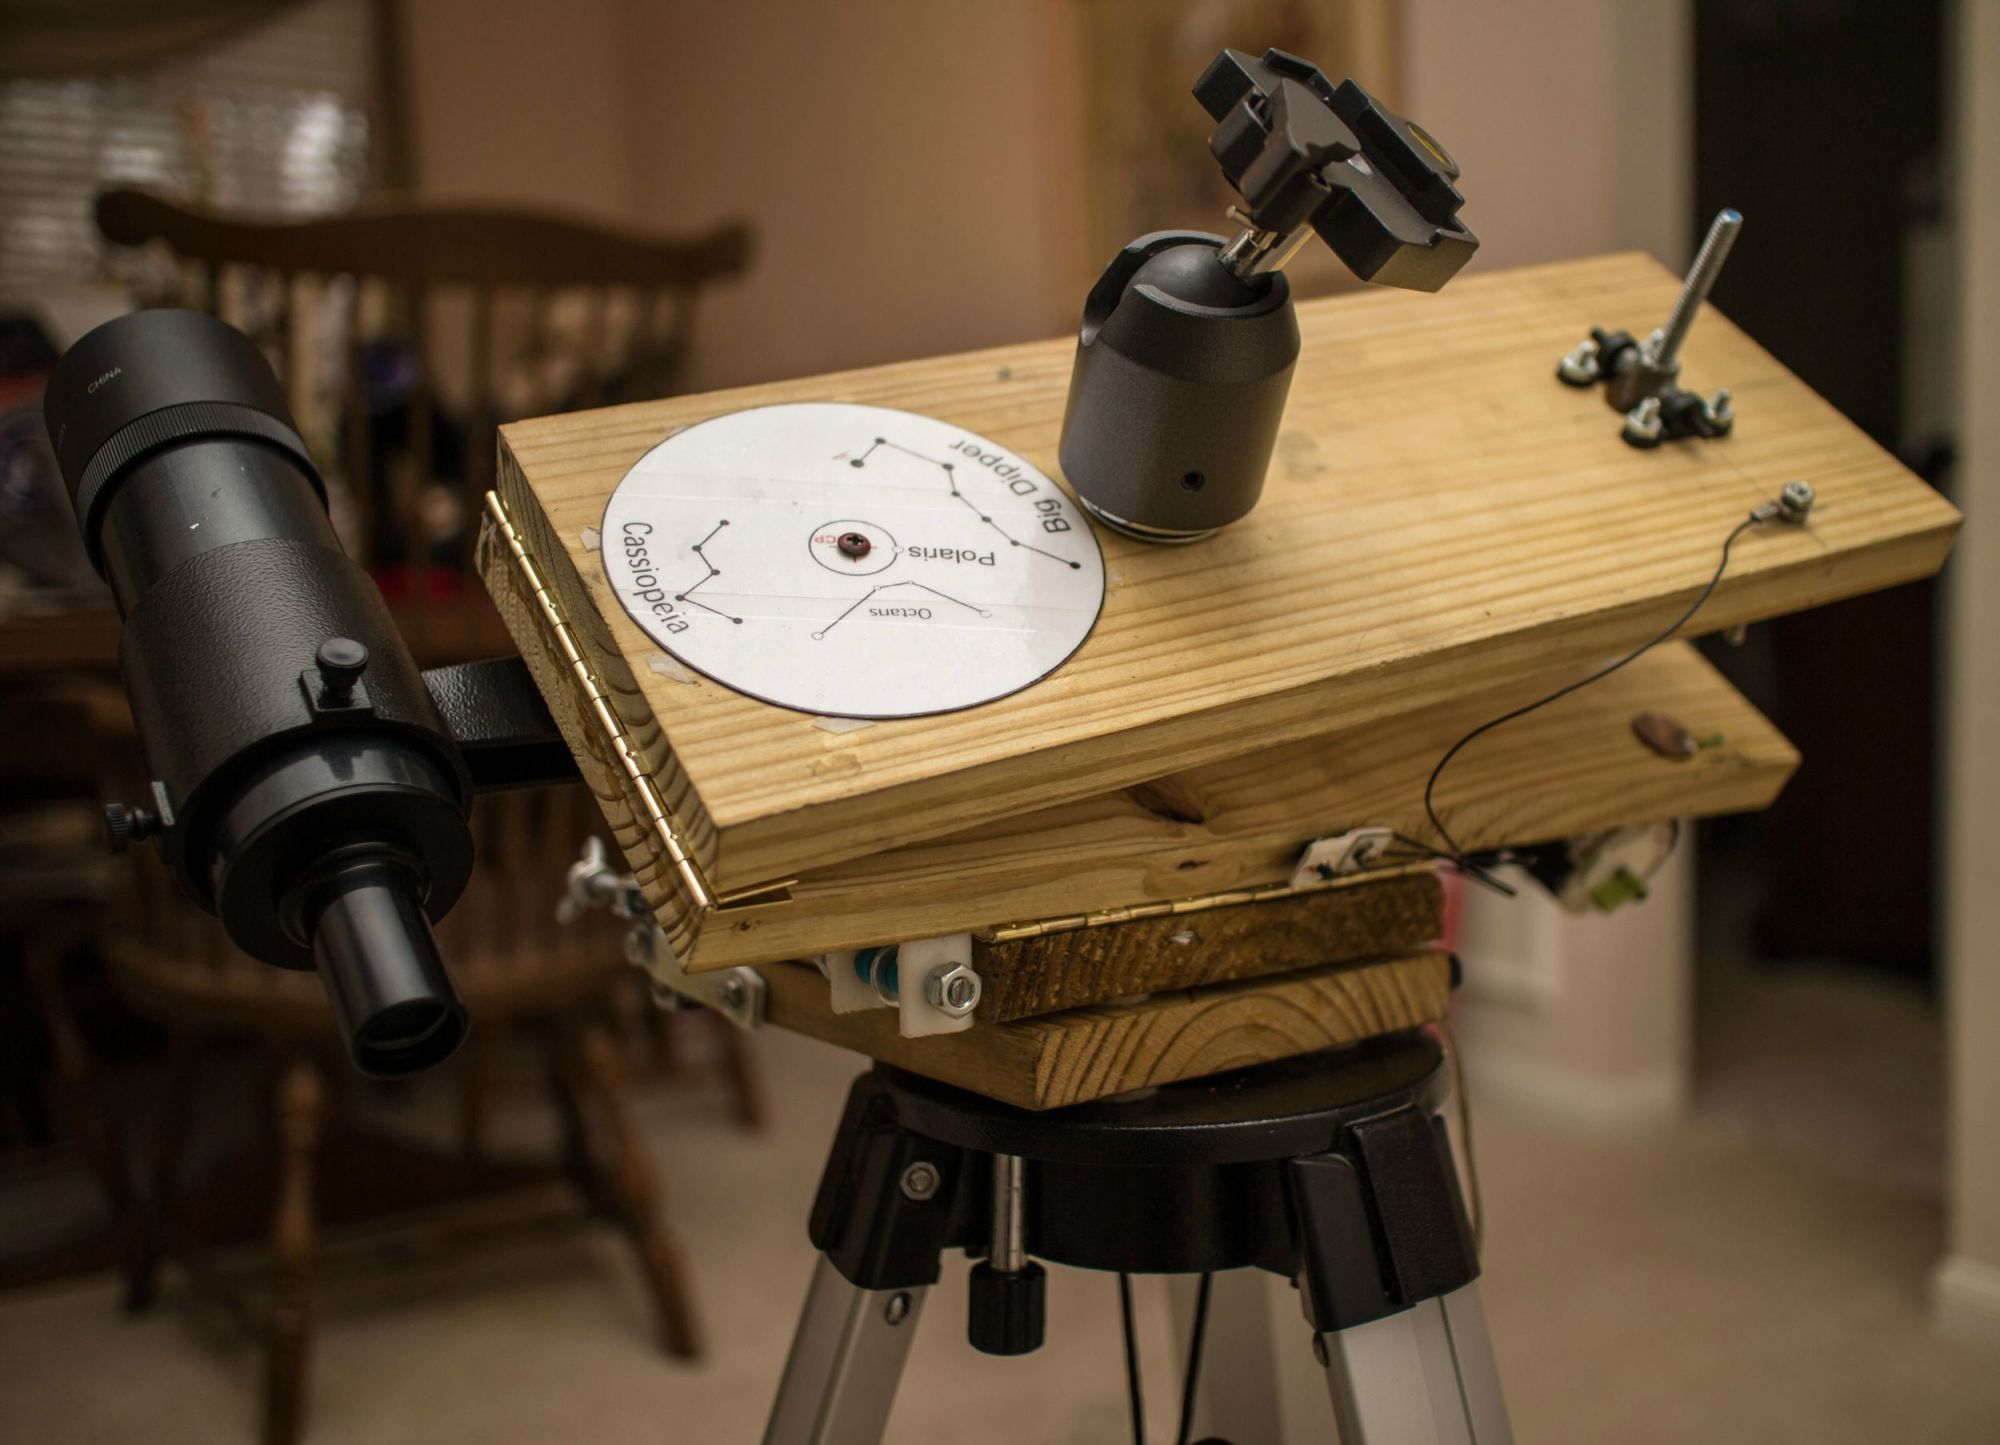 Avr Barn Door Tracker For Astrophotography Making Things